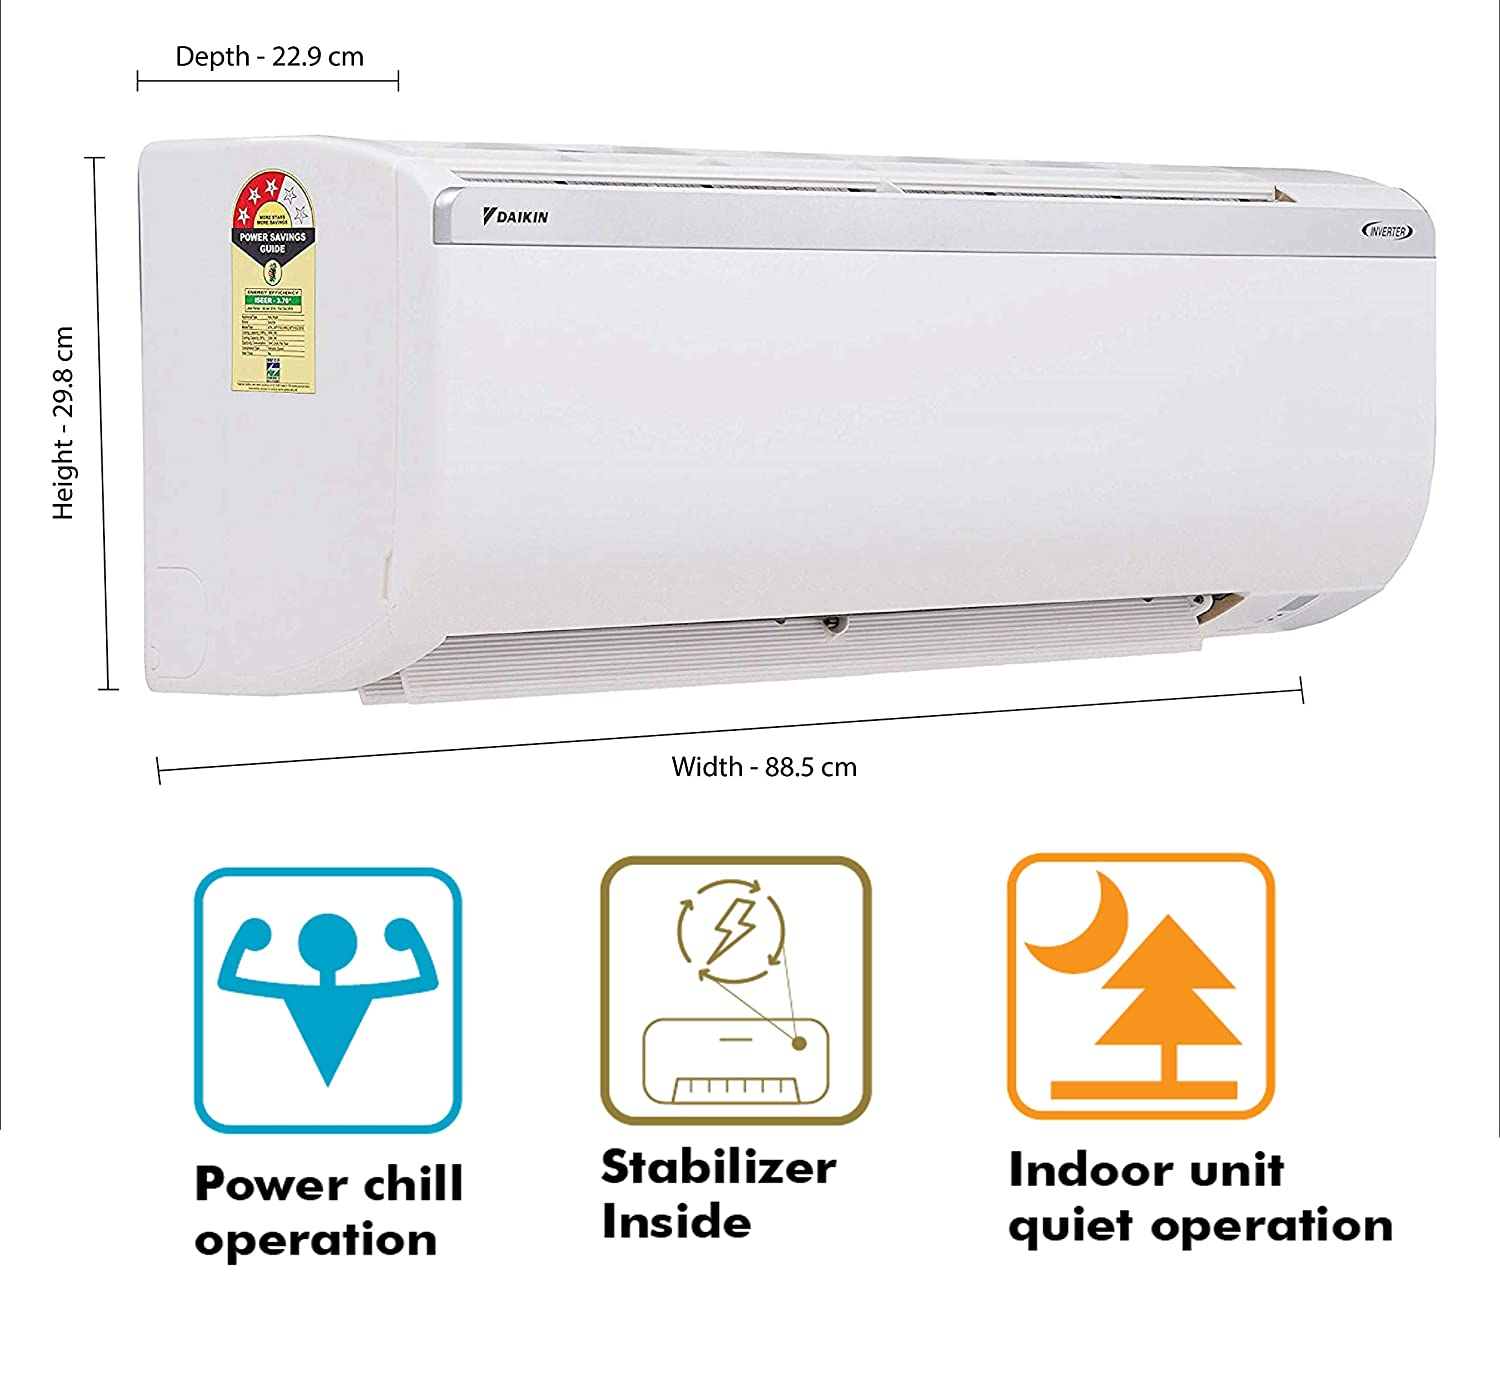 daikan inverter ac under 40000